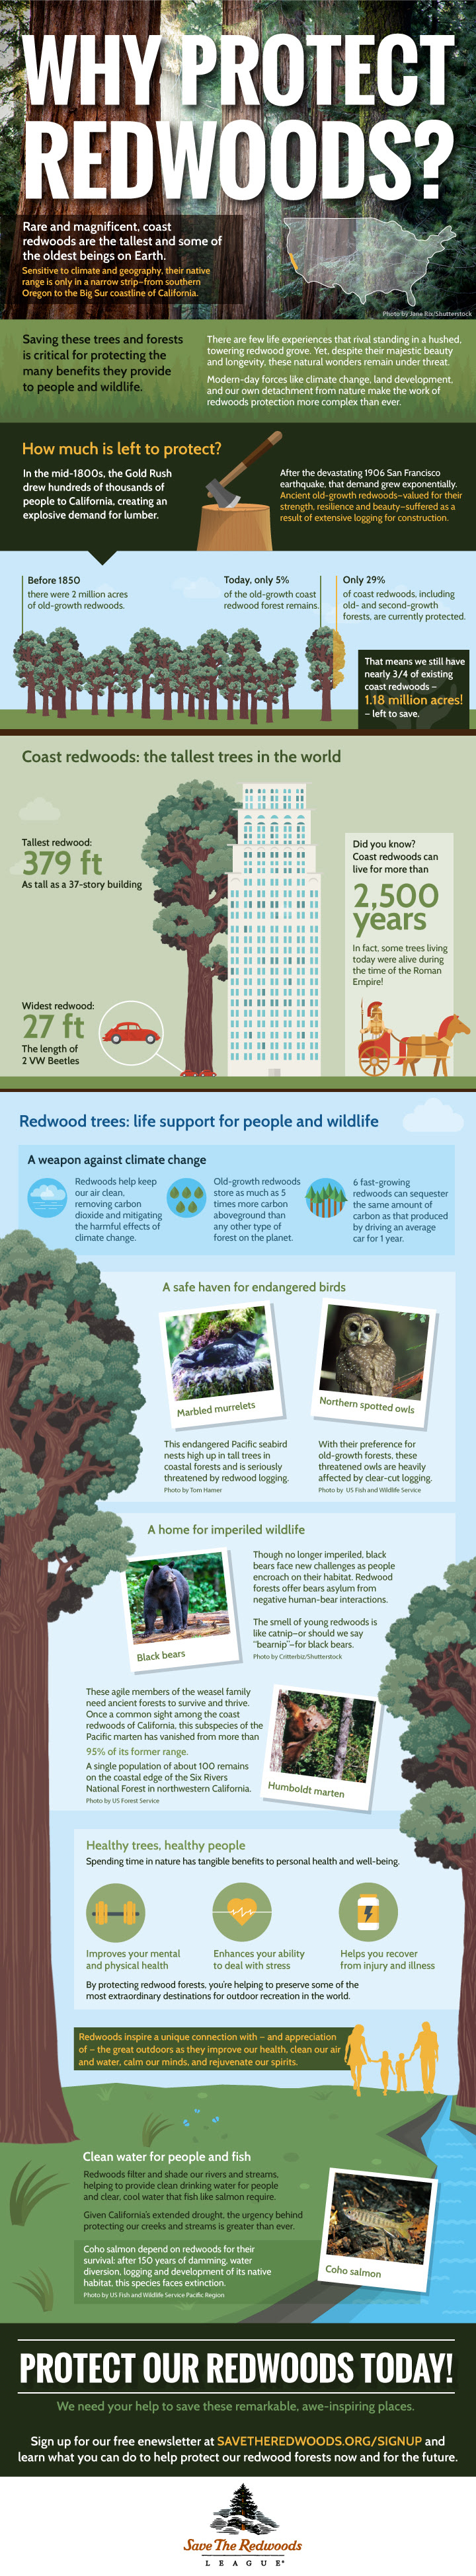 Why Protect Redwoods?